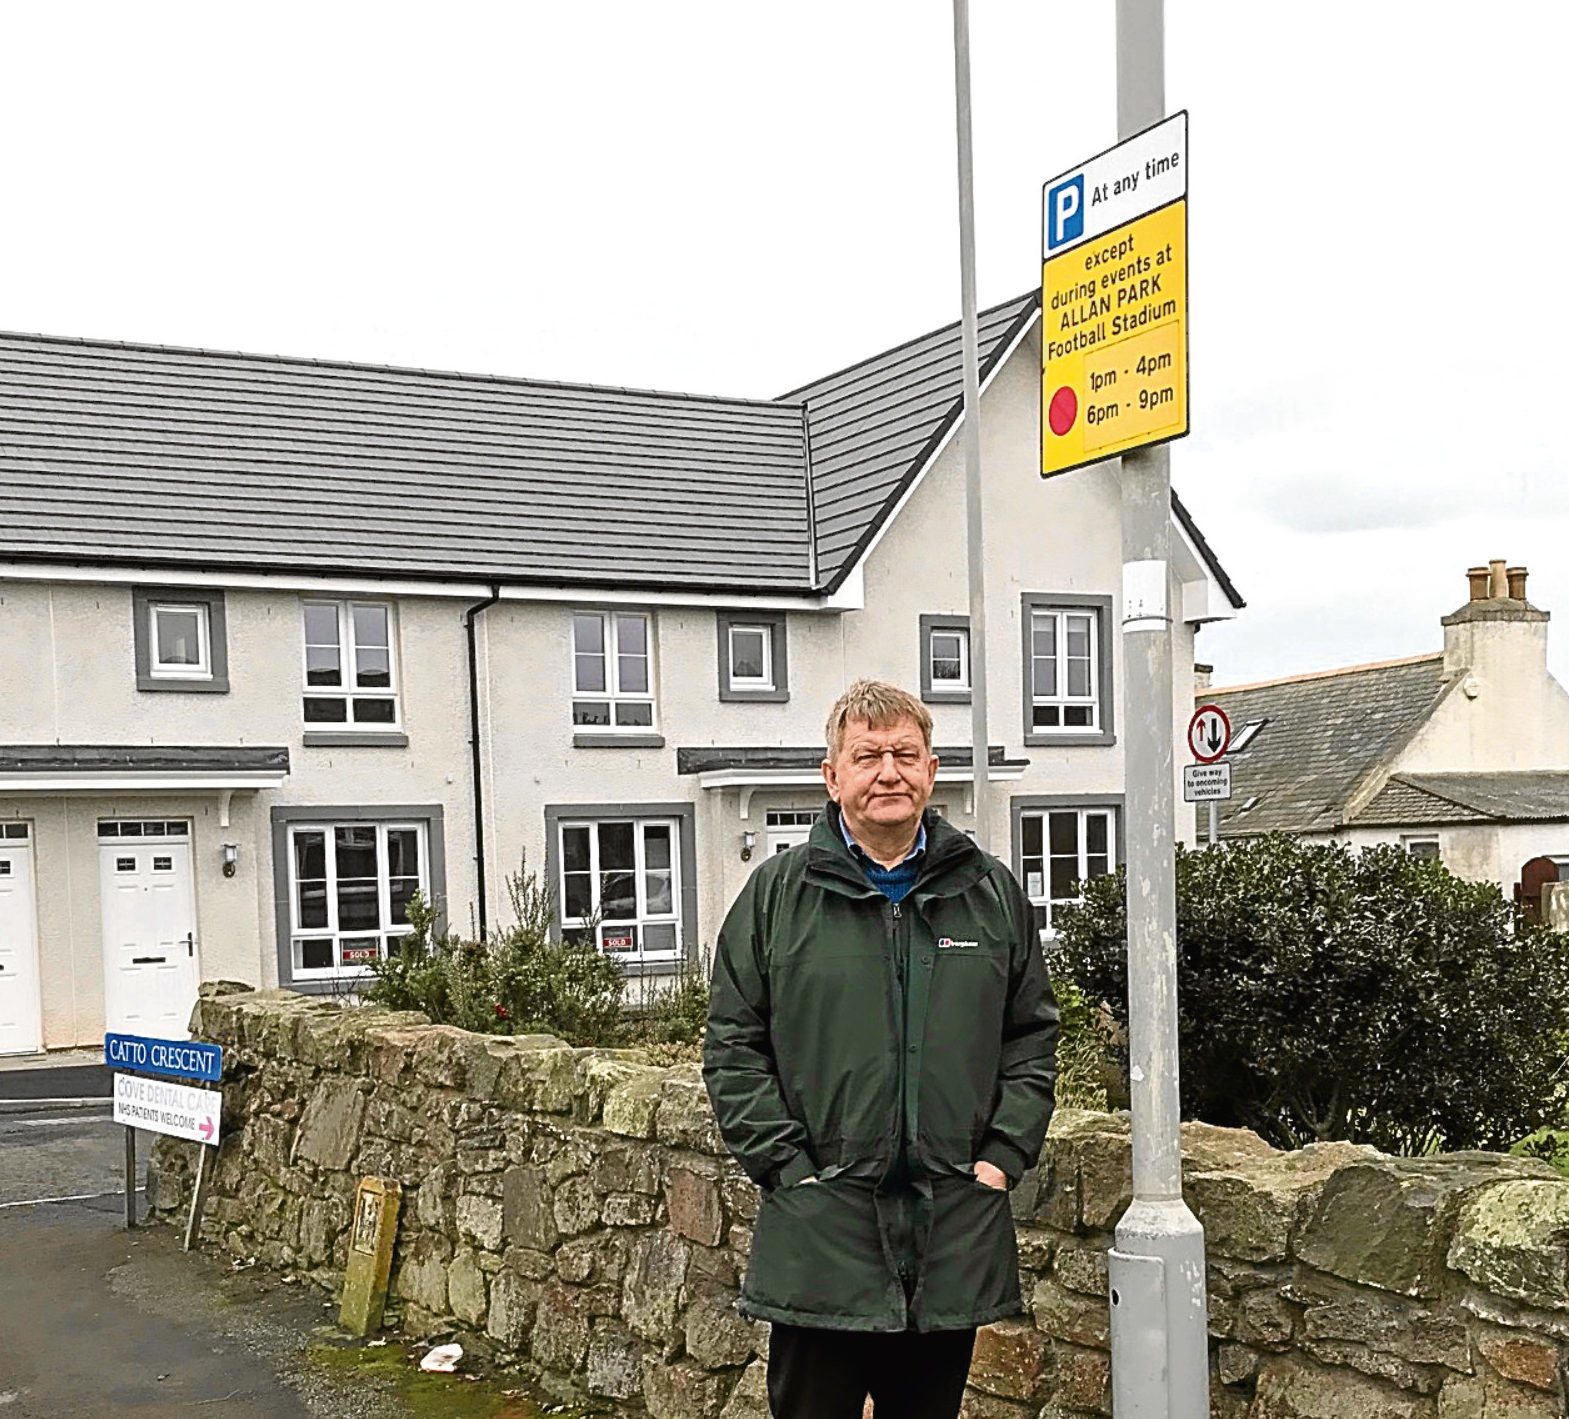 Councillor Alex Nicoll and one of the parking signs outside the houses on the former Allan Park site.